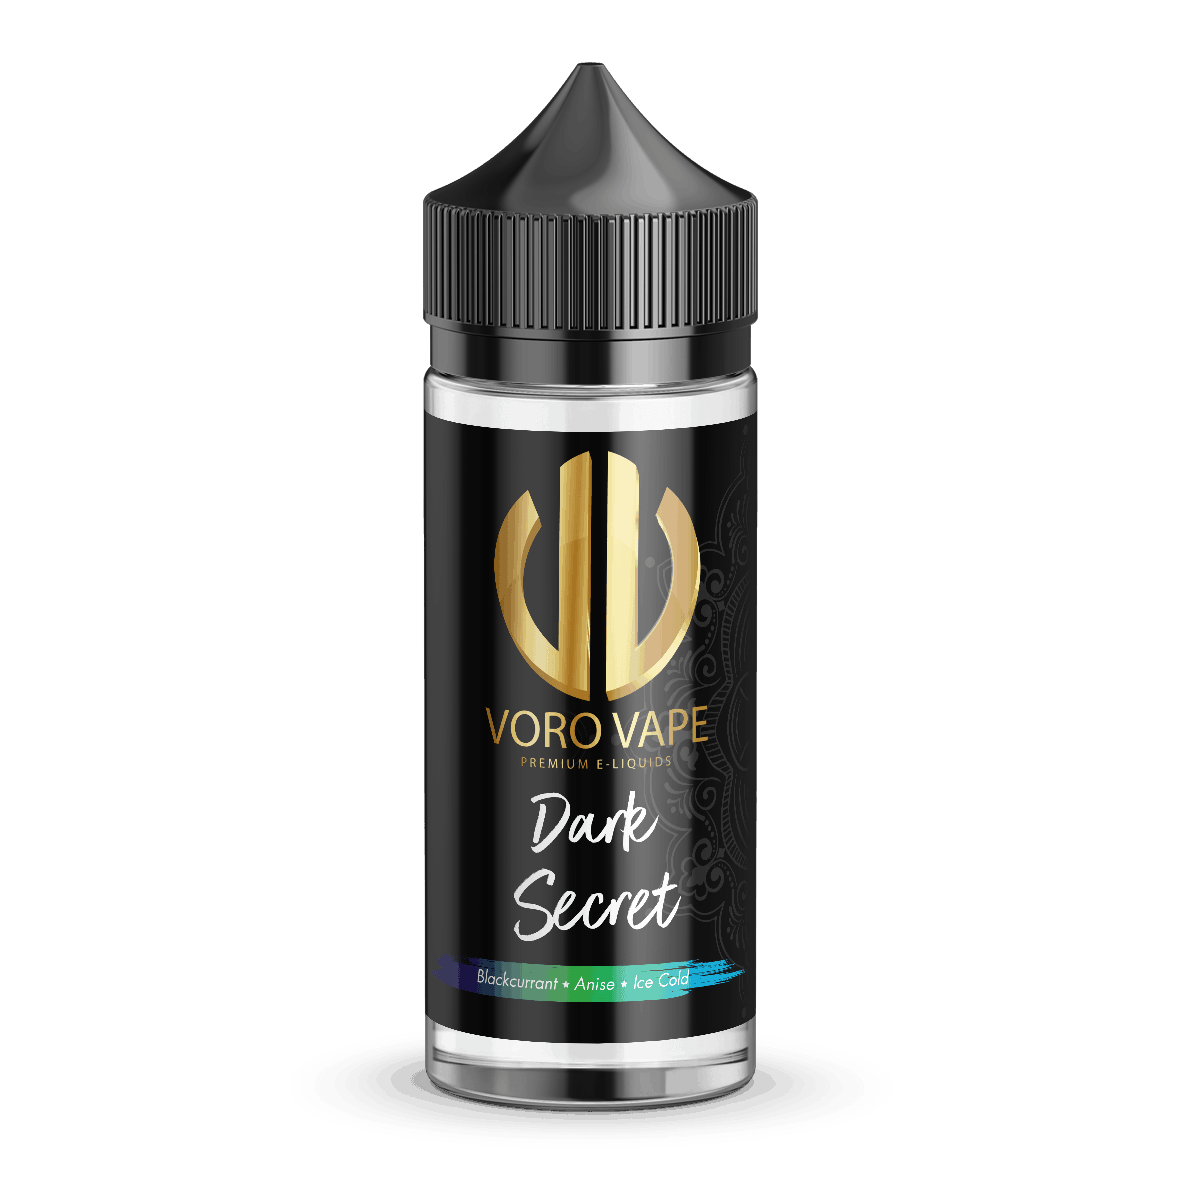 Dark Secret E-Liquid Shortfill by Voro Vape